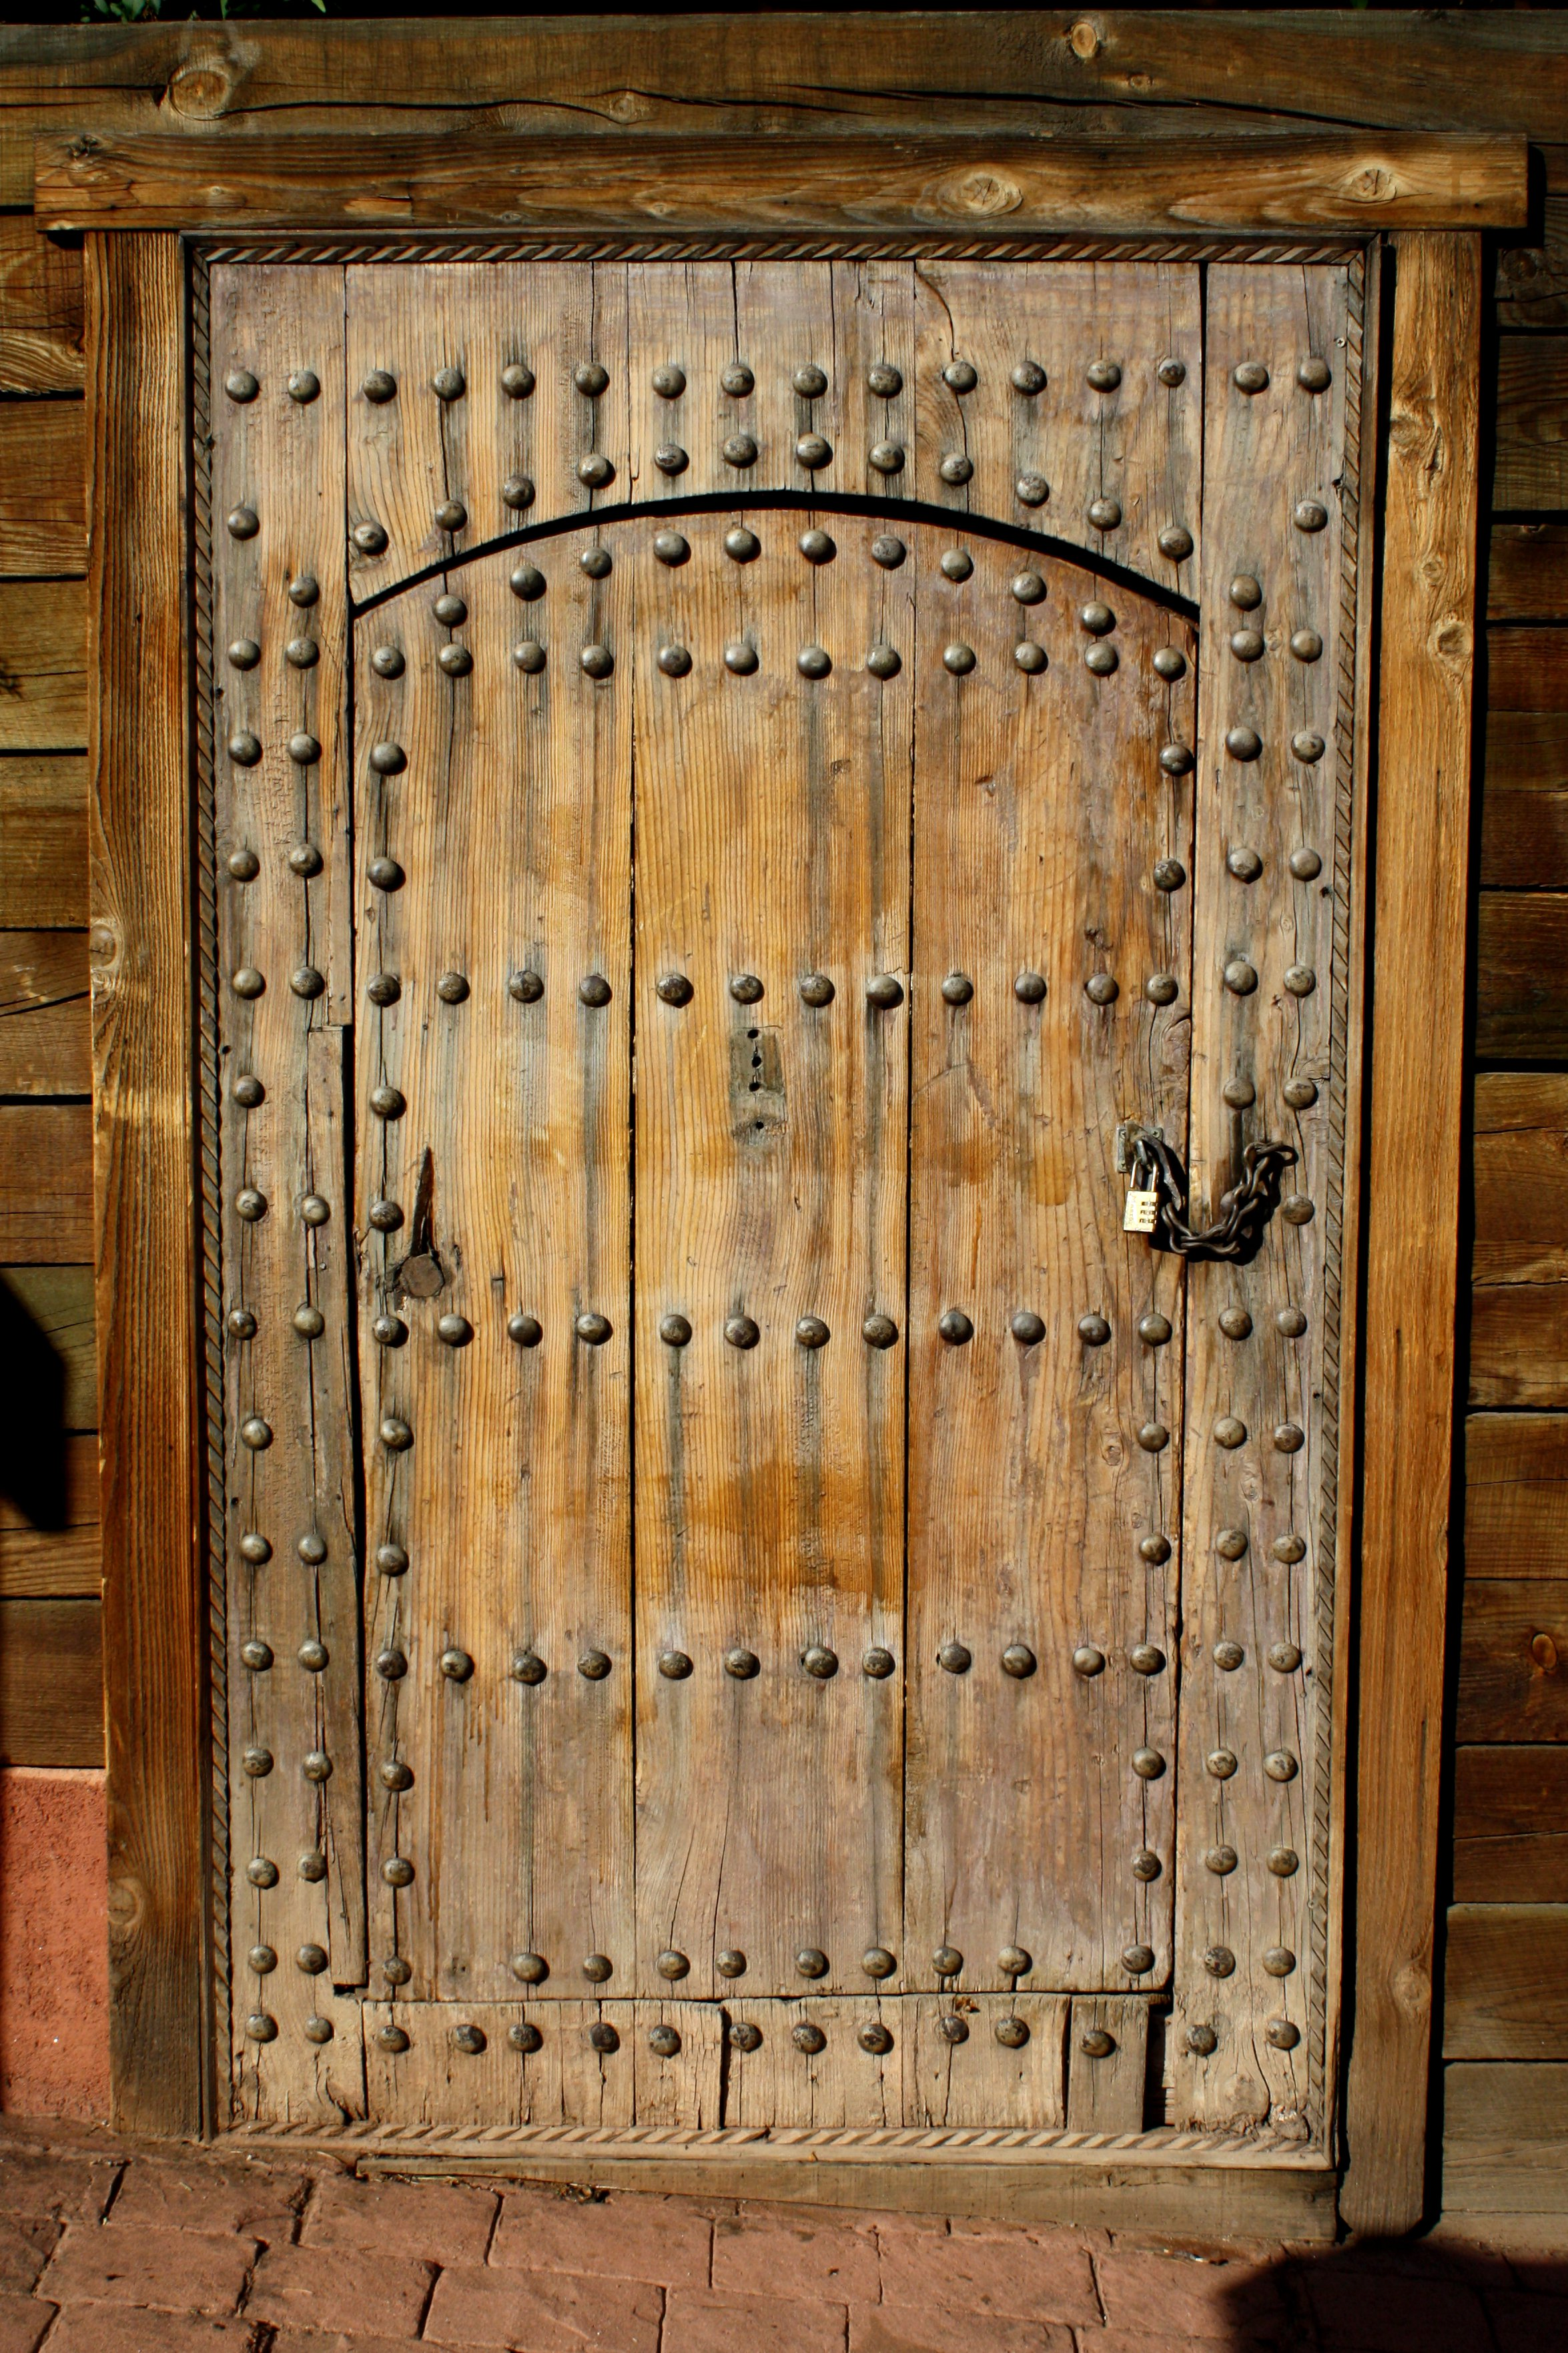 free photo doors ancient wood door free image on world rustic wooden door with bolts and padlock 816